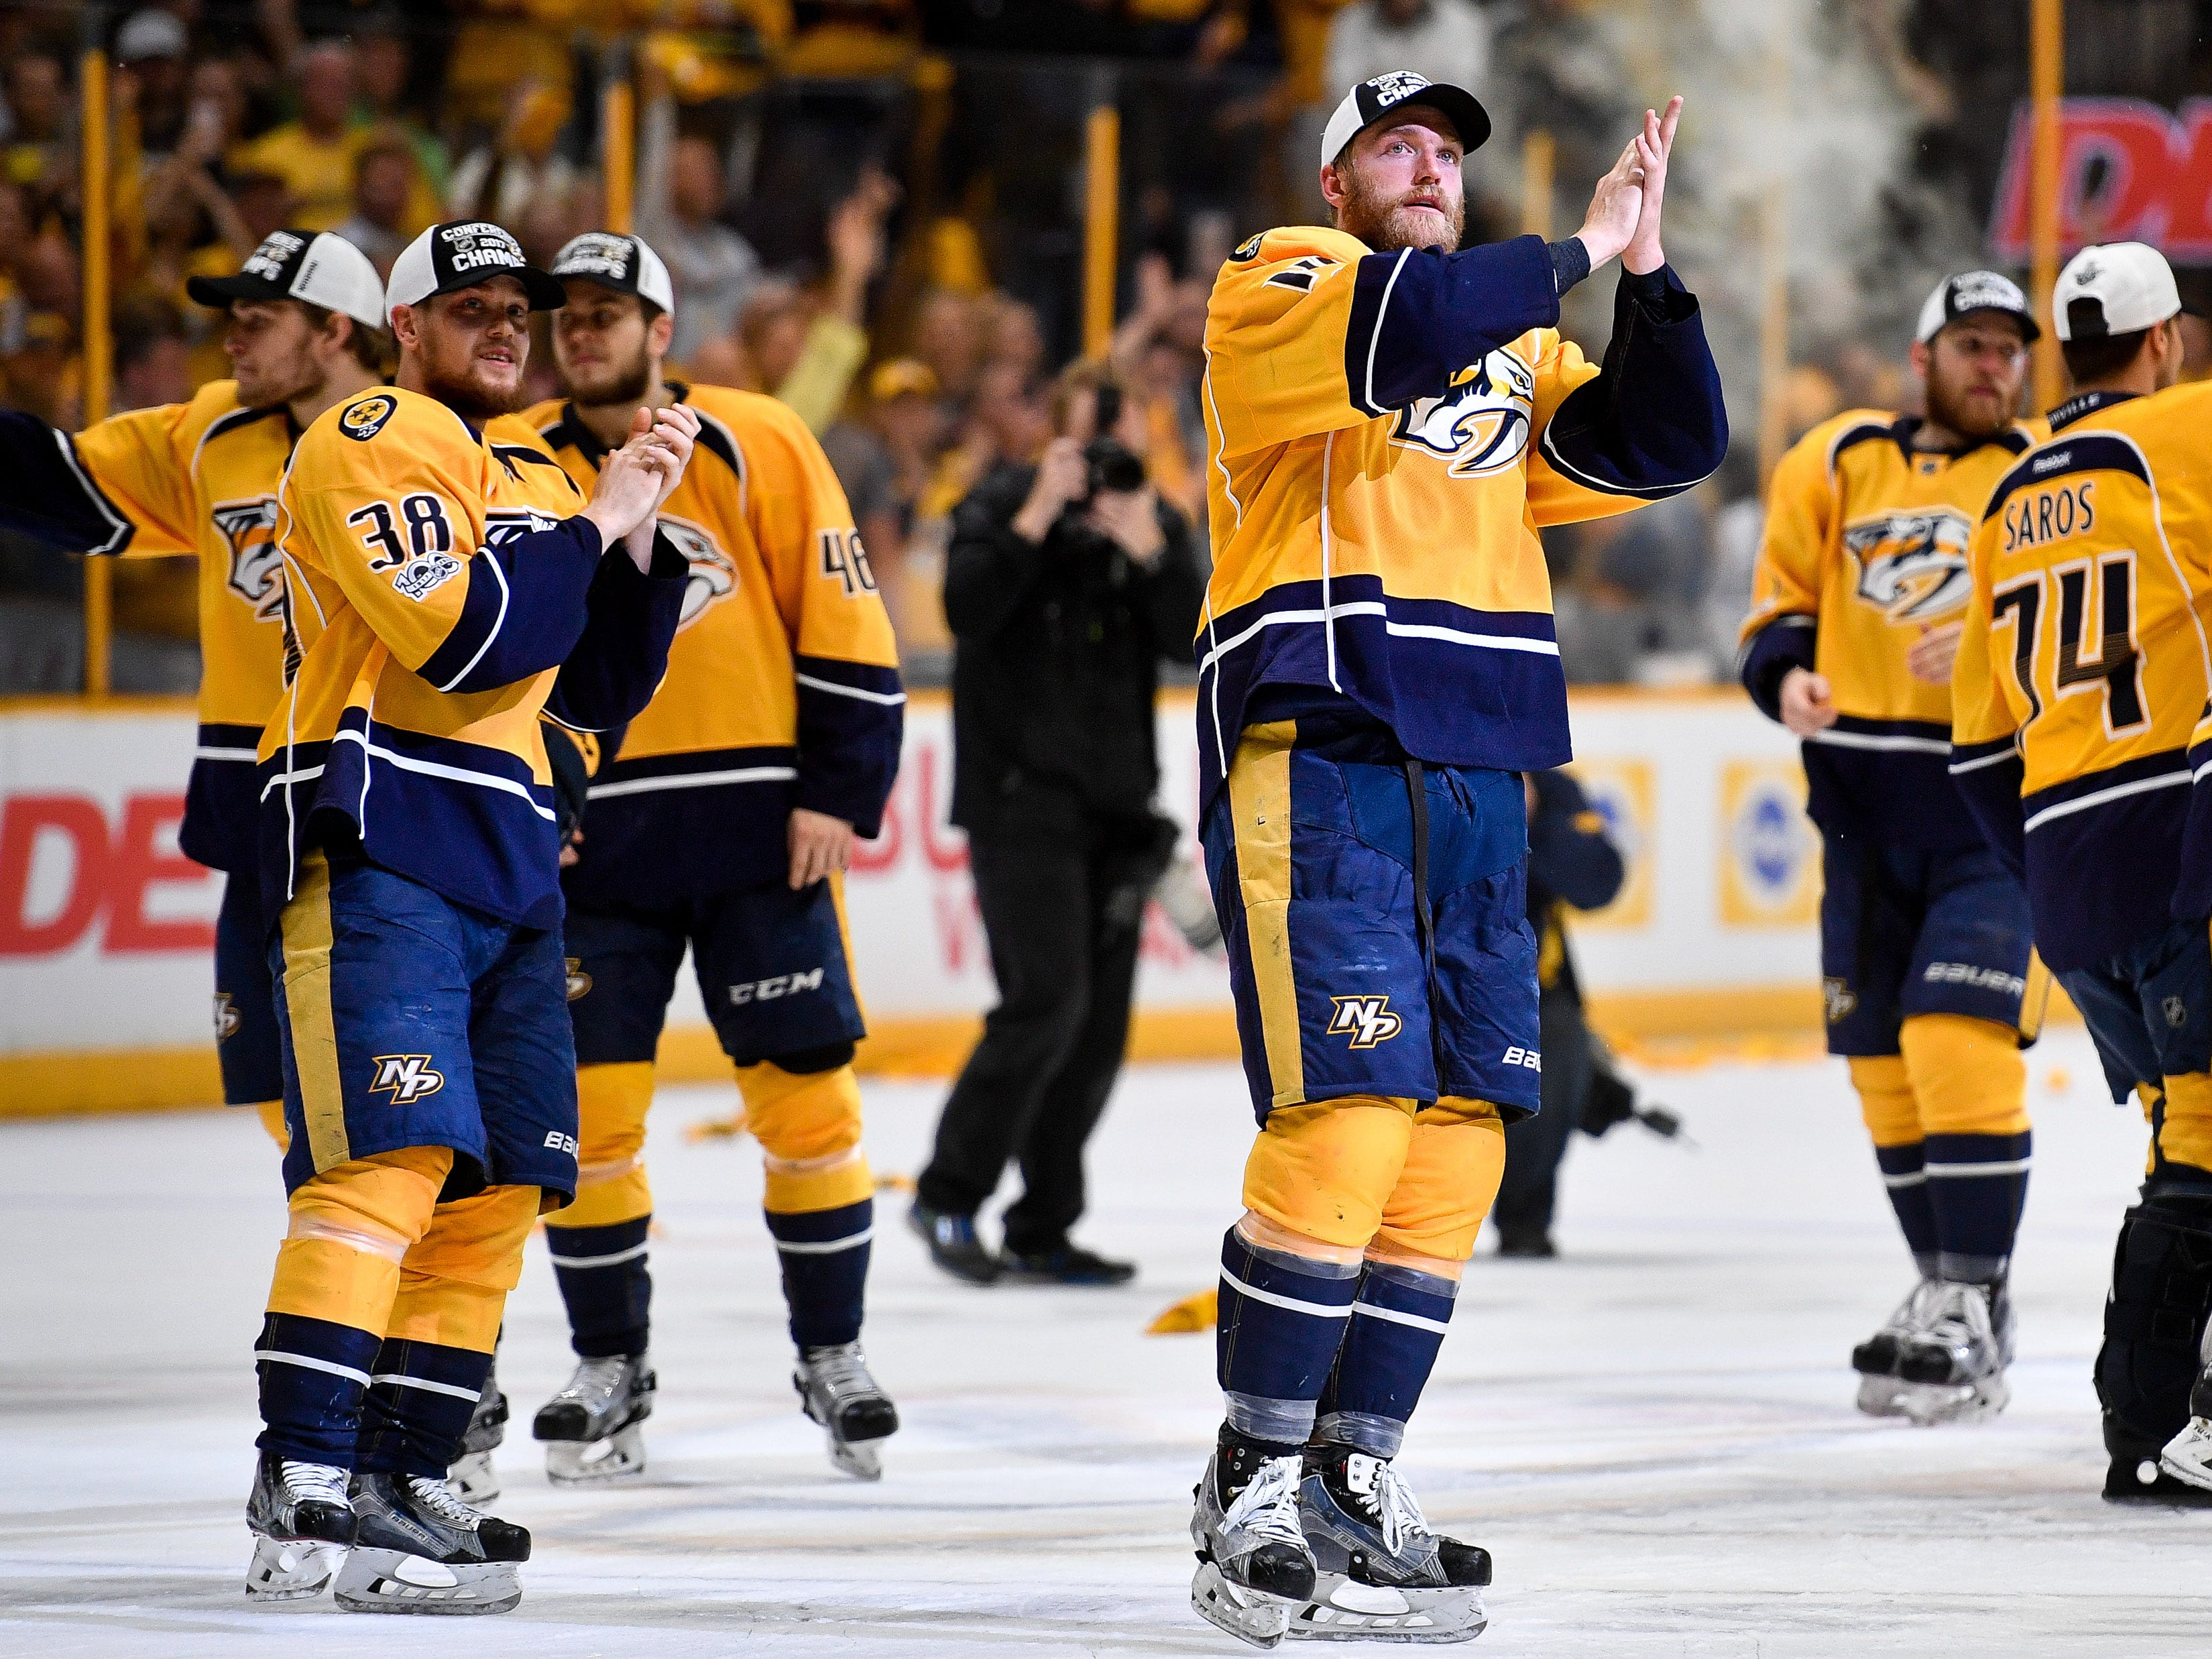 #14, Mattias Ekholm, Defenseman - Nashville Predators defenseman Mattias Ekholm (14) celebrates after the Nashville Predators' game 6 victory in the Western Conference final at Bridgestone Arena in Nashville, Tenn., Monday, May 22, 2017.